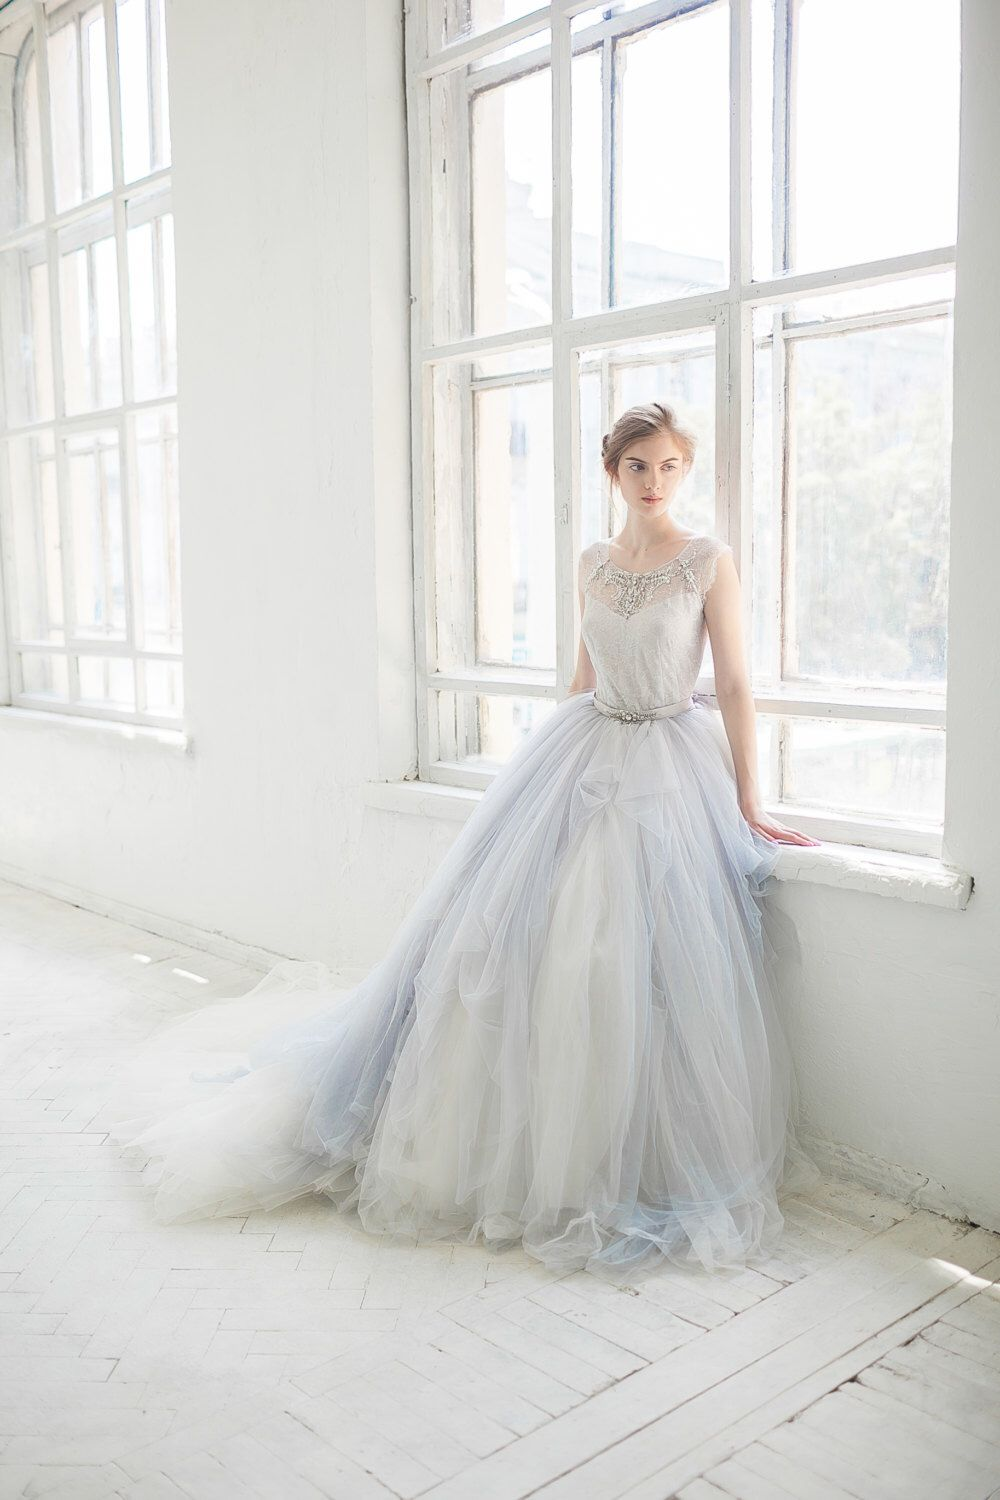 Tulle wedding gown gardenia icy gray wedding dress silver grey